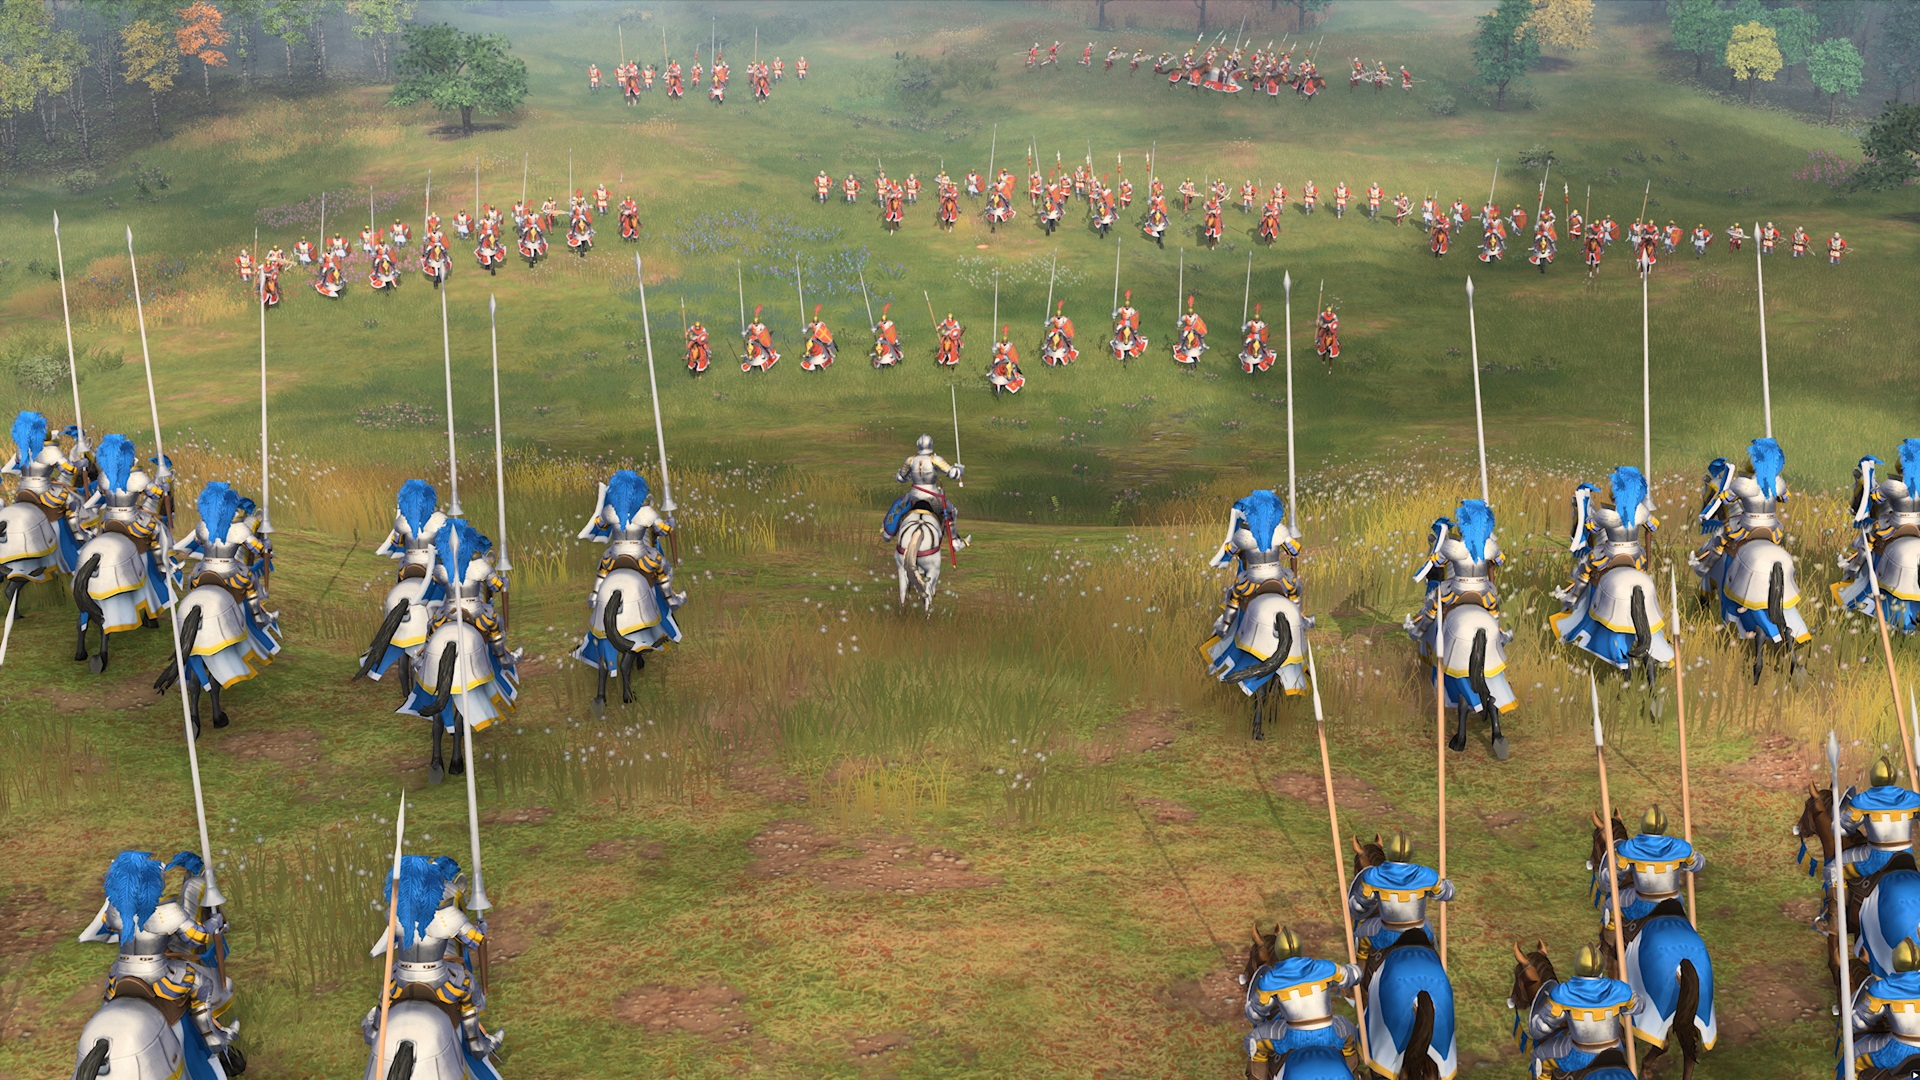 Age of Empires 4 fans are upset over regional pricing differences